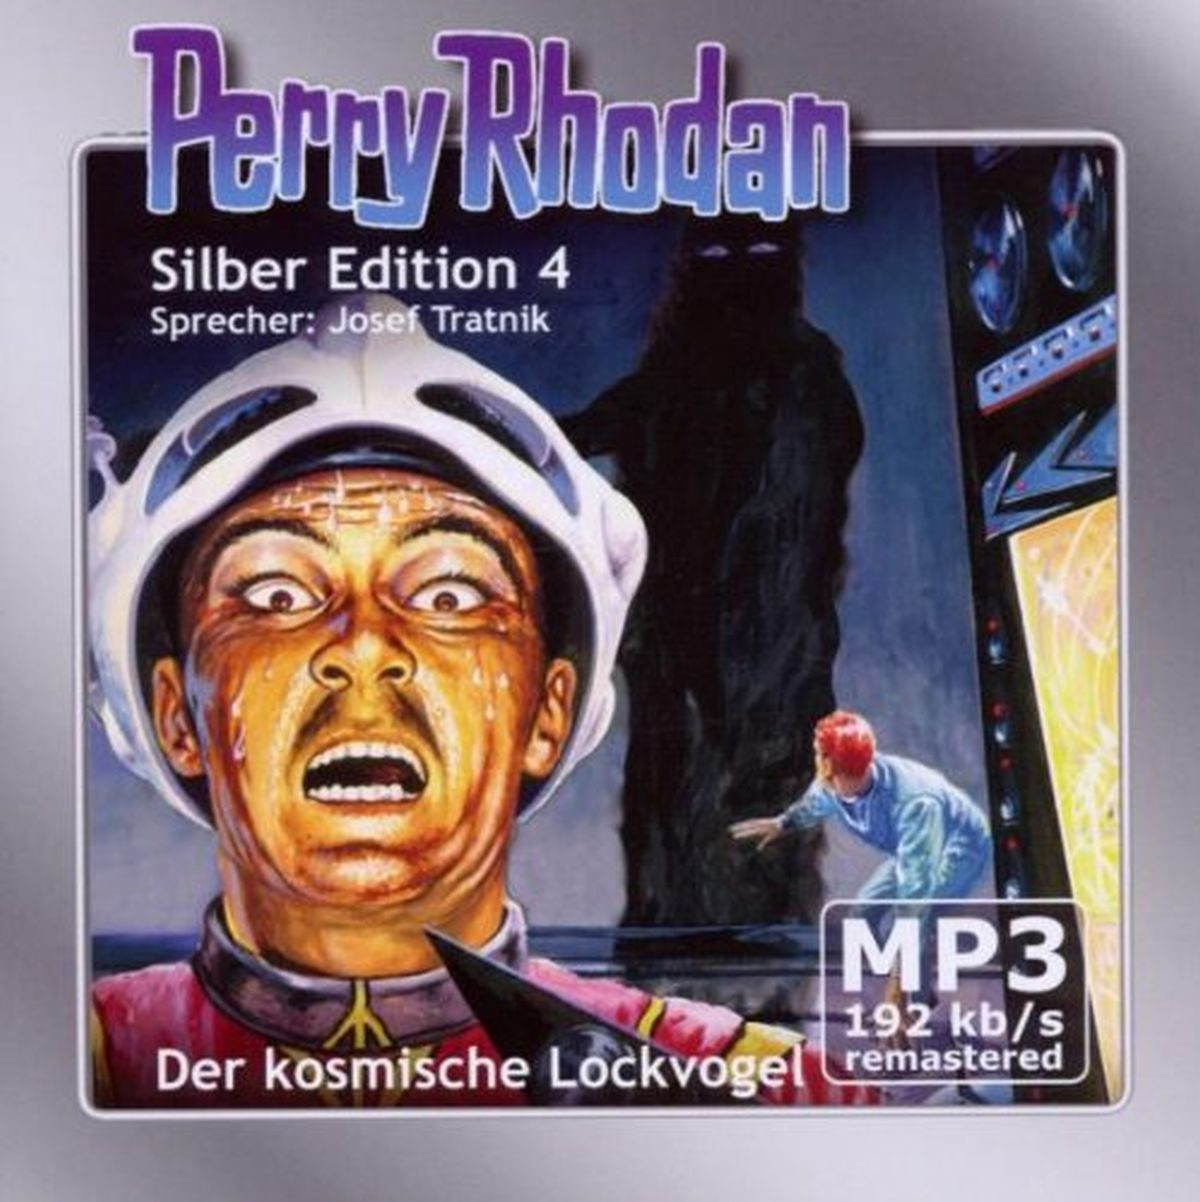 Perry Rhodan Silber Edition (mp3-CDs) 04 - Der kosmische Lockvogel - Remastered